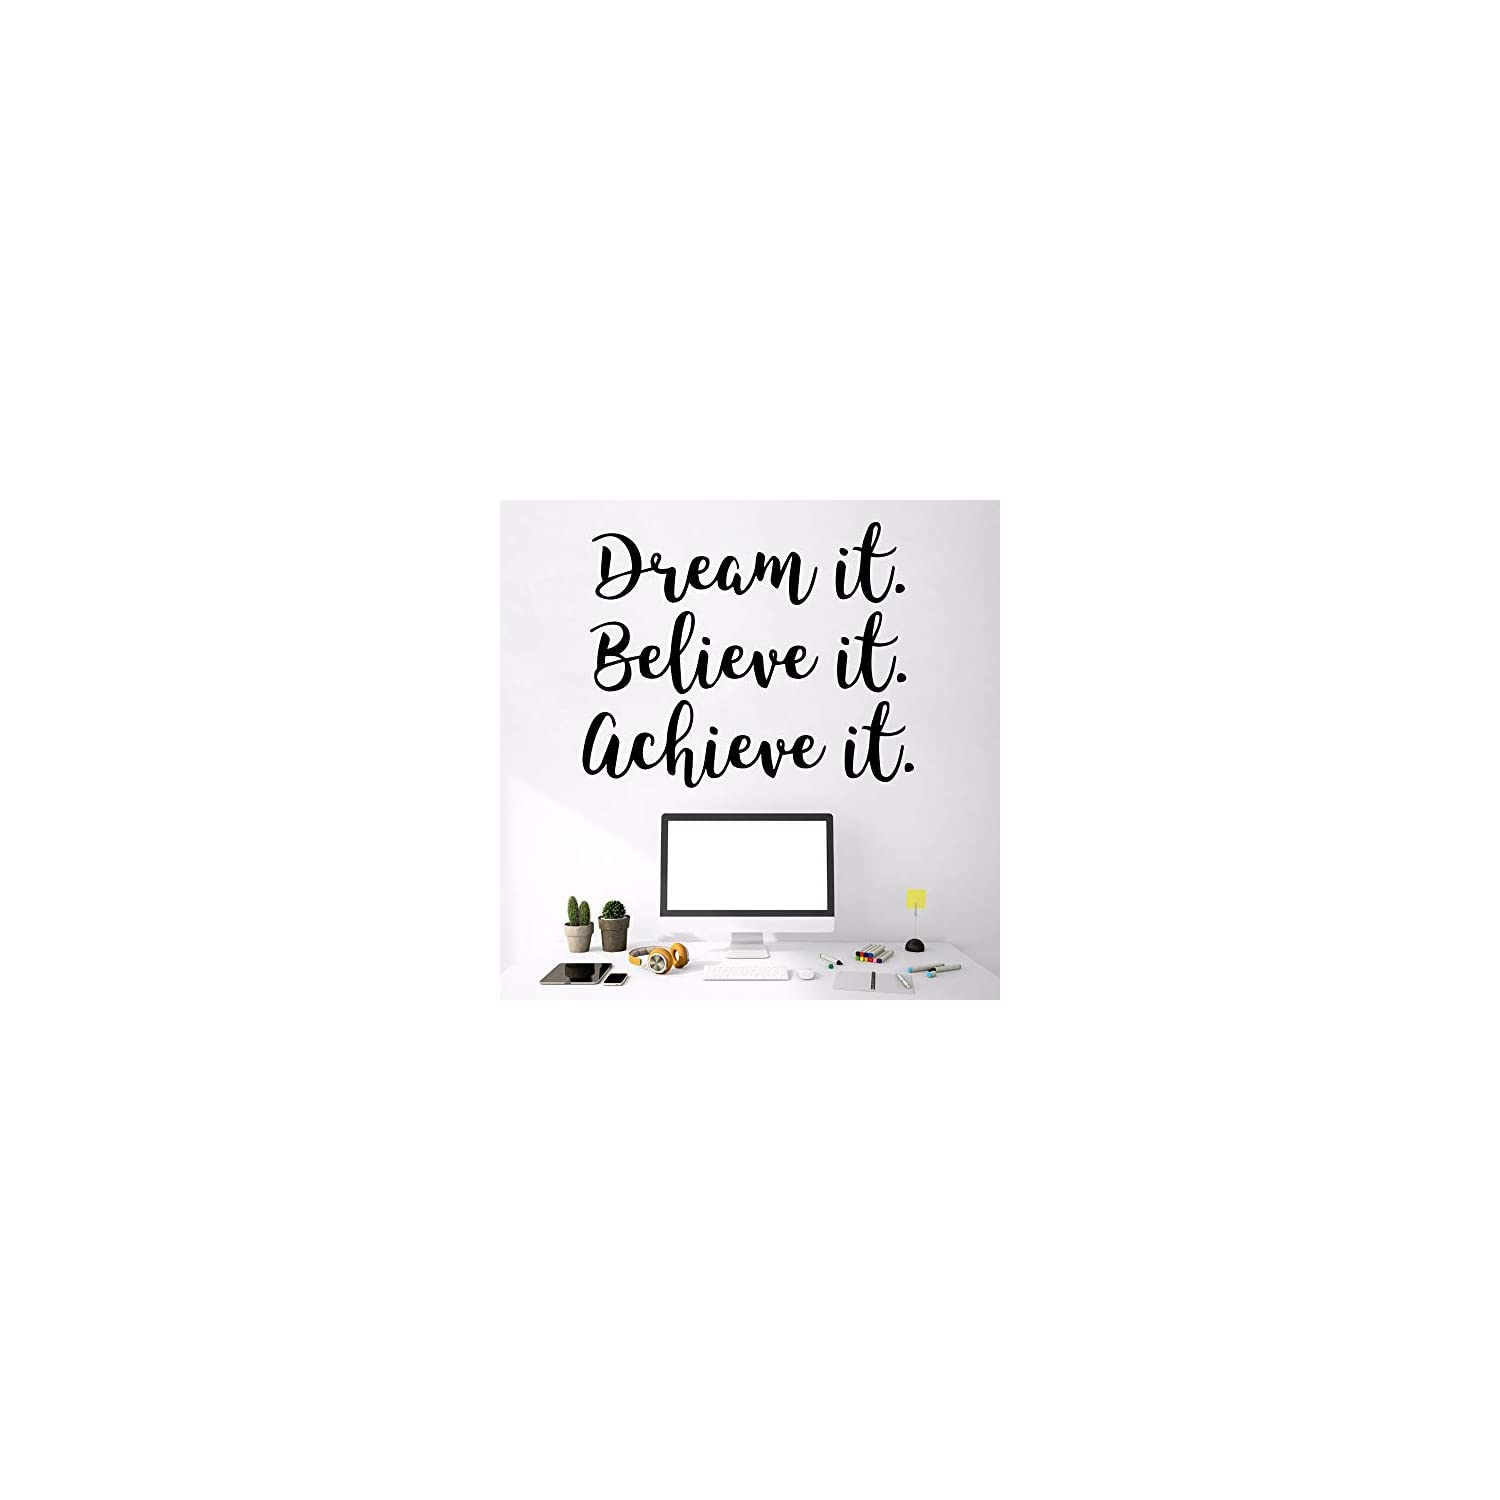 Wall Stickers, Wall Decals, Wall Paintings, Wall Tattoos, Wall Posters,Creative Dream Text Vinyl Wallpaper Roll Furniture Decorative PVC Wall Decals Art Decoration DIY Home Decor